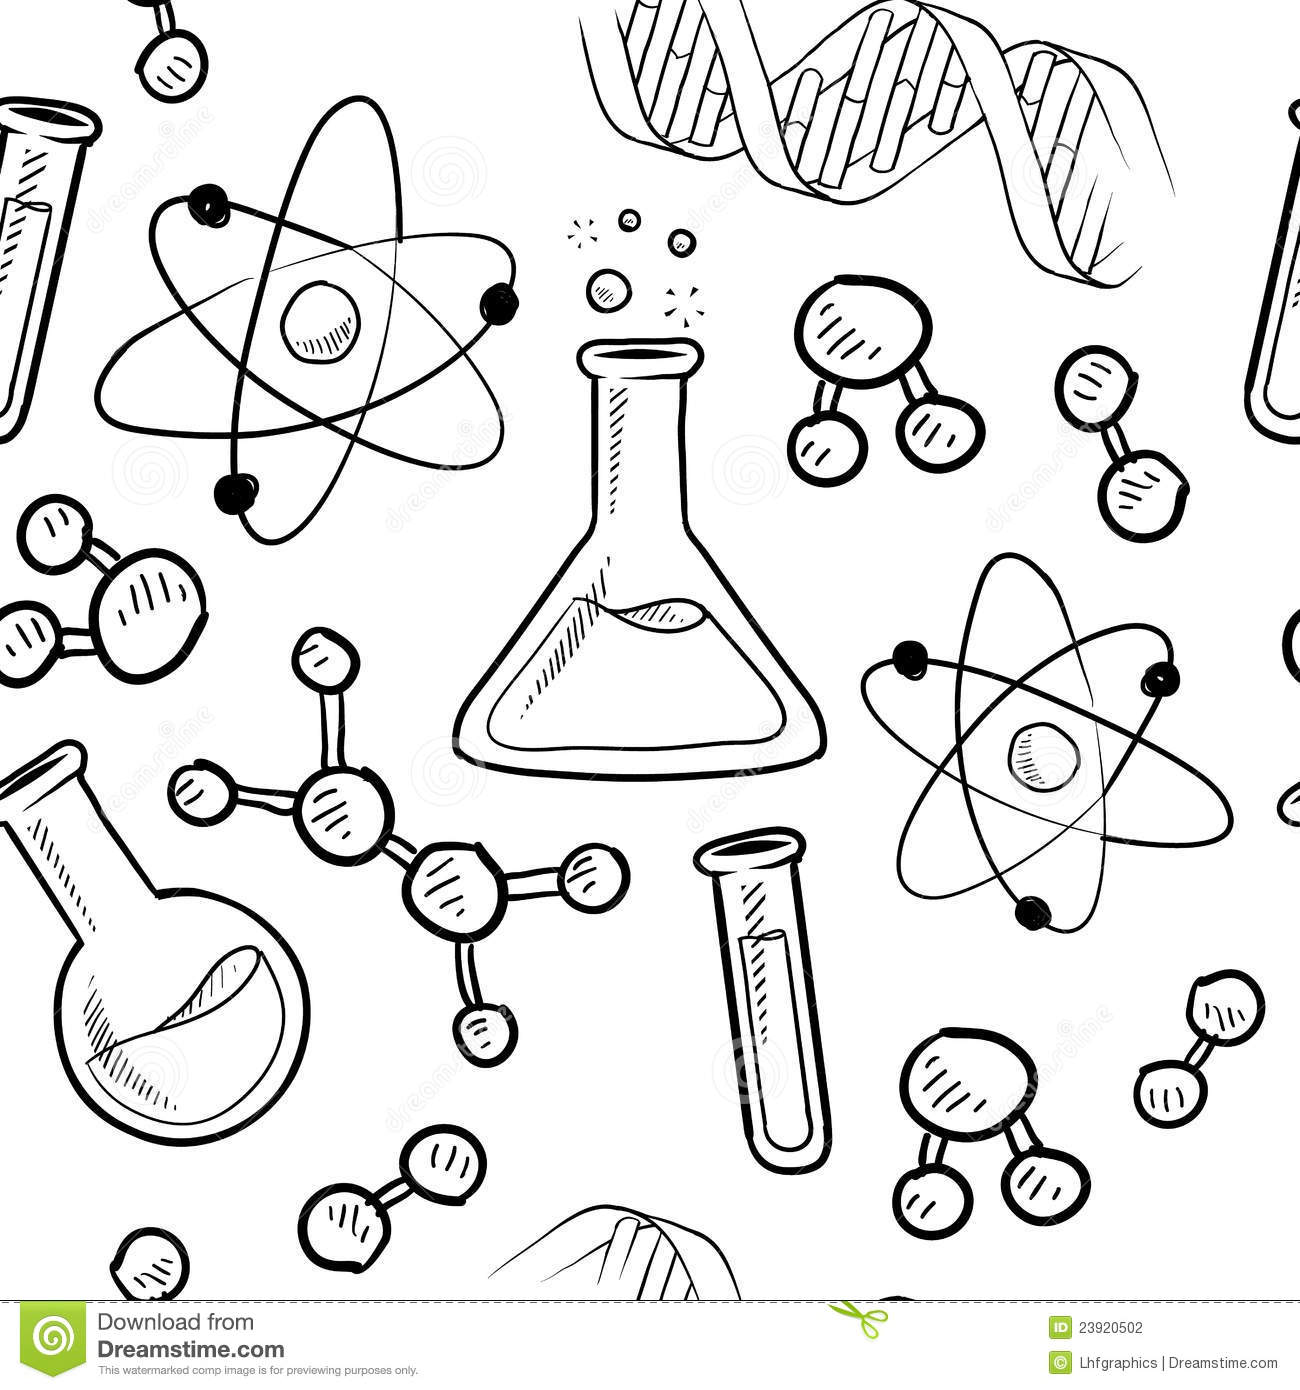 Chemistry Drawing at GetDrawings.com | Free for personal use ...